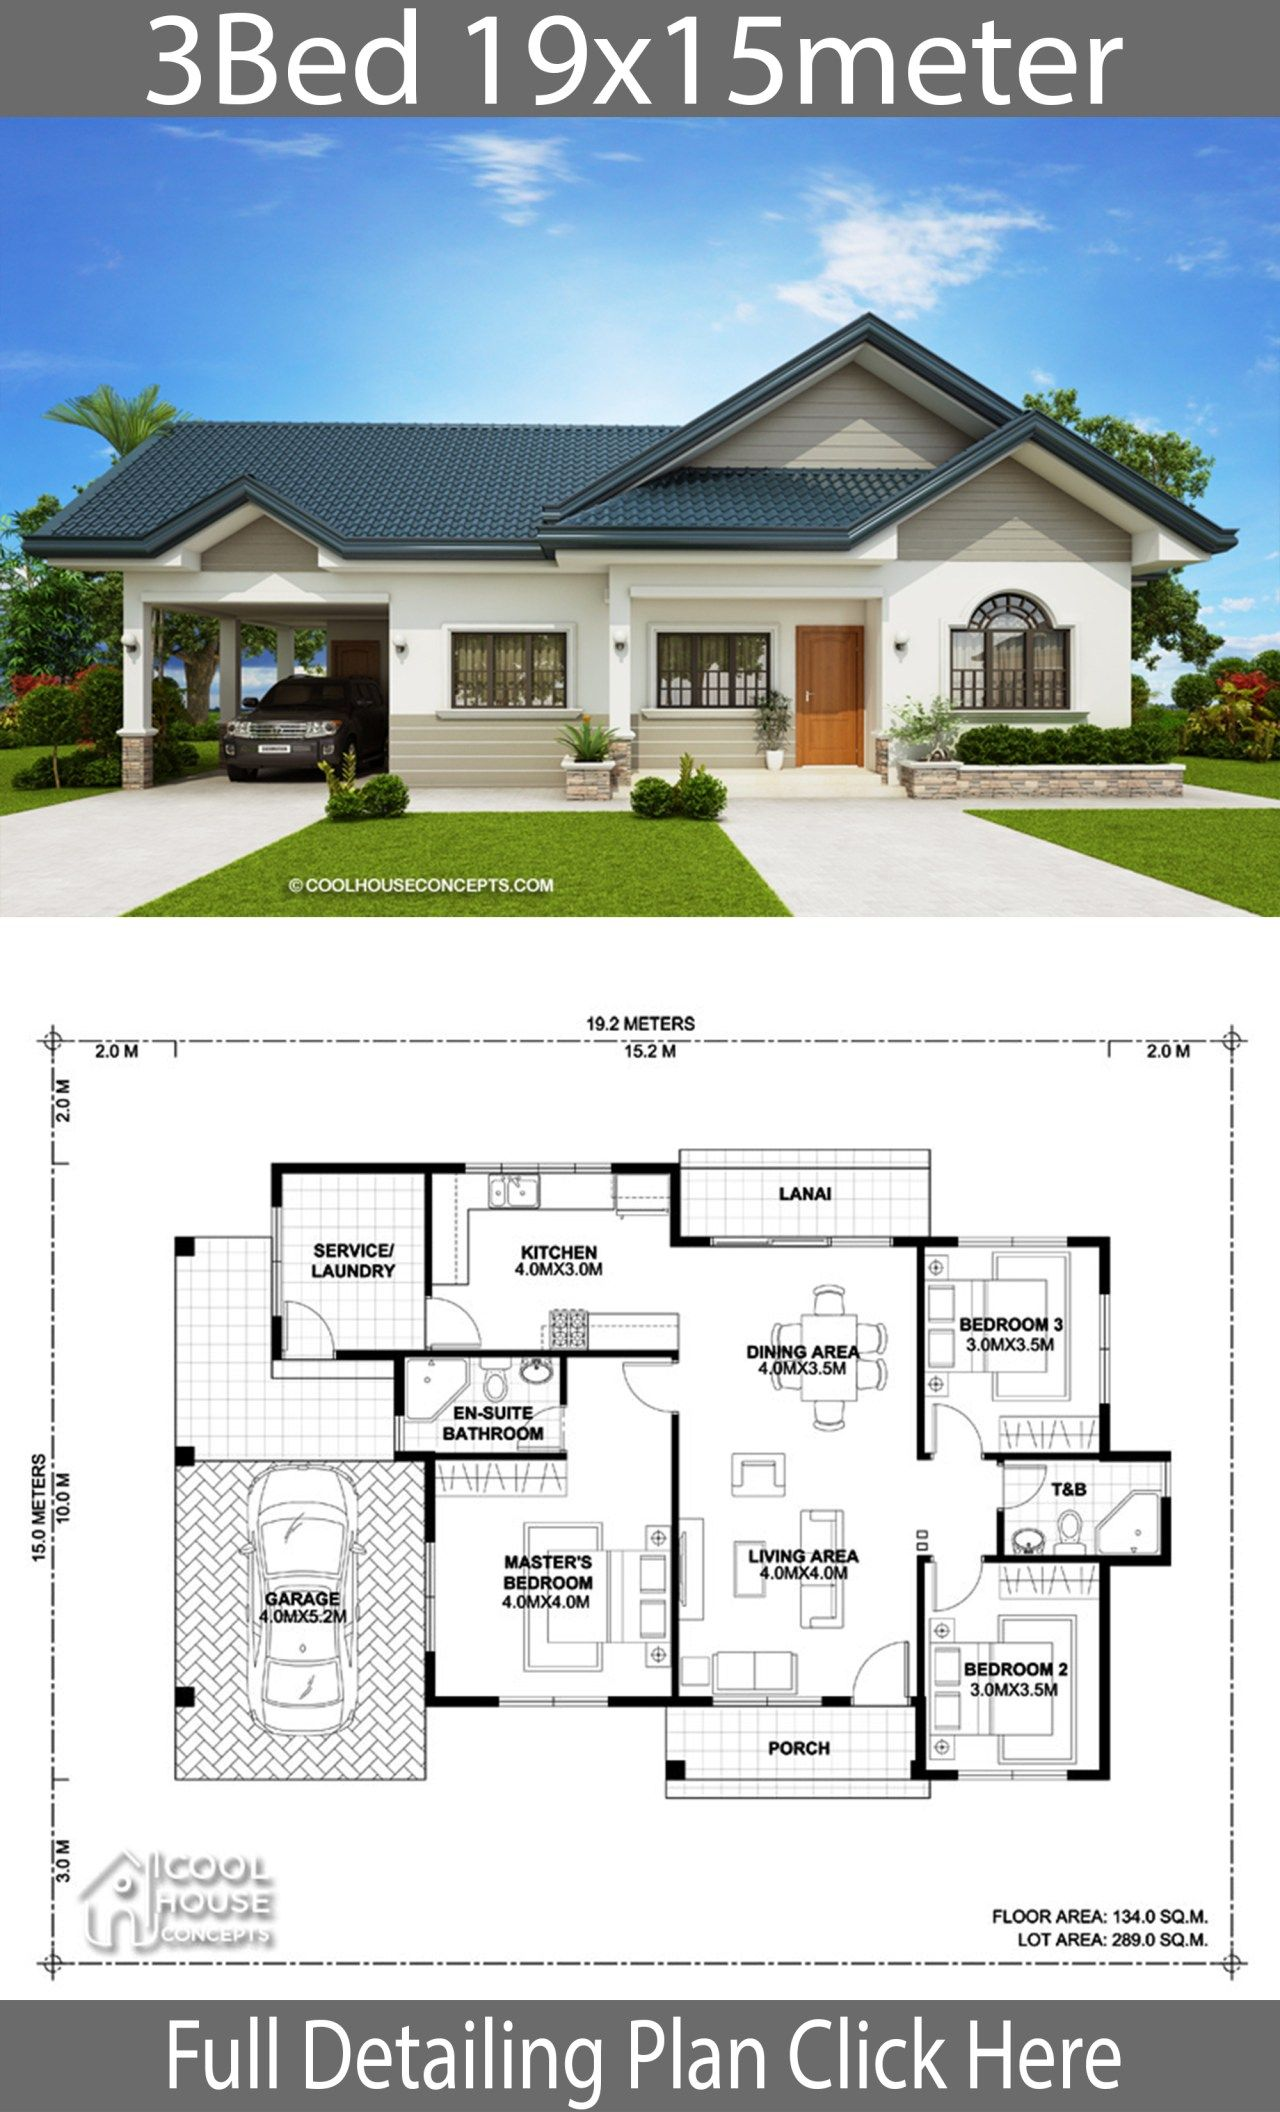 Home Design Plan 19x15m With 3 Bedrooms Home Ideas House Plan Gallery Beautiful House Plans Affordable House Plans